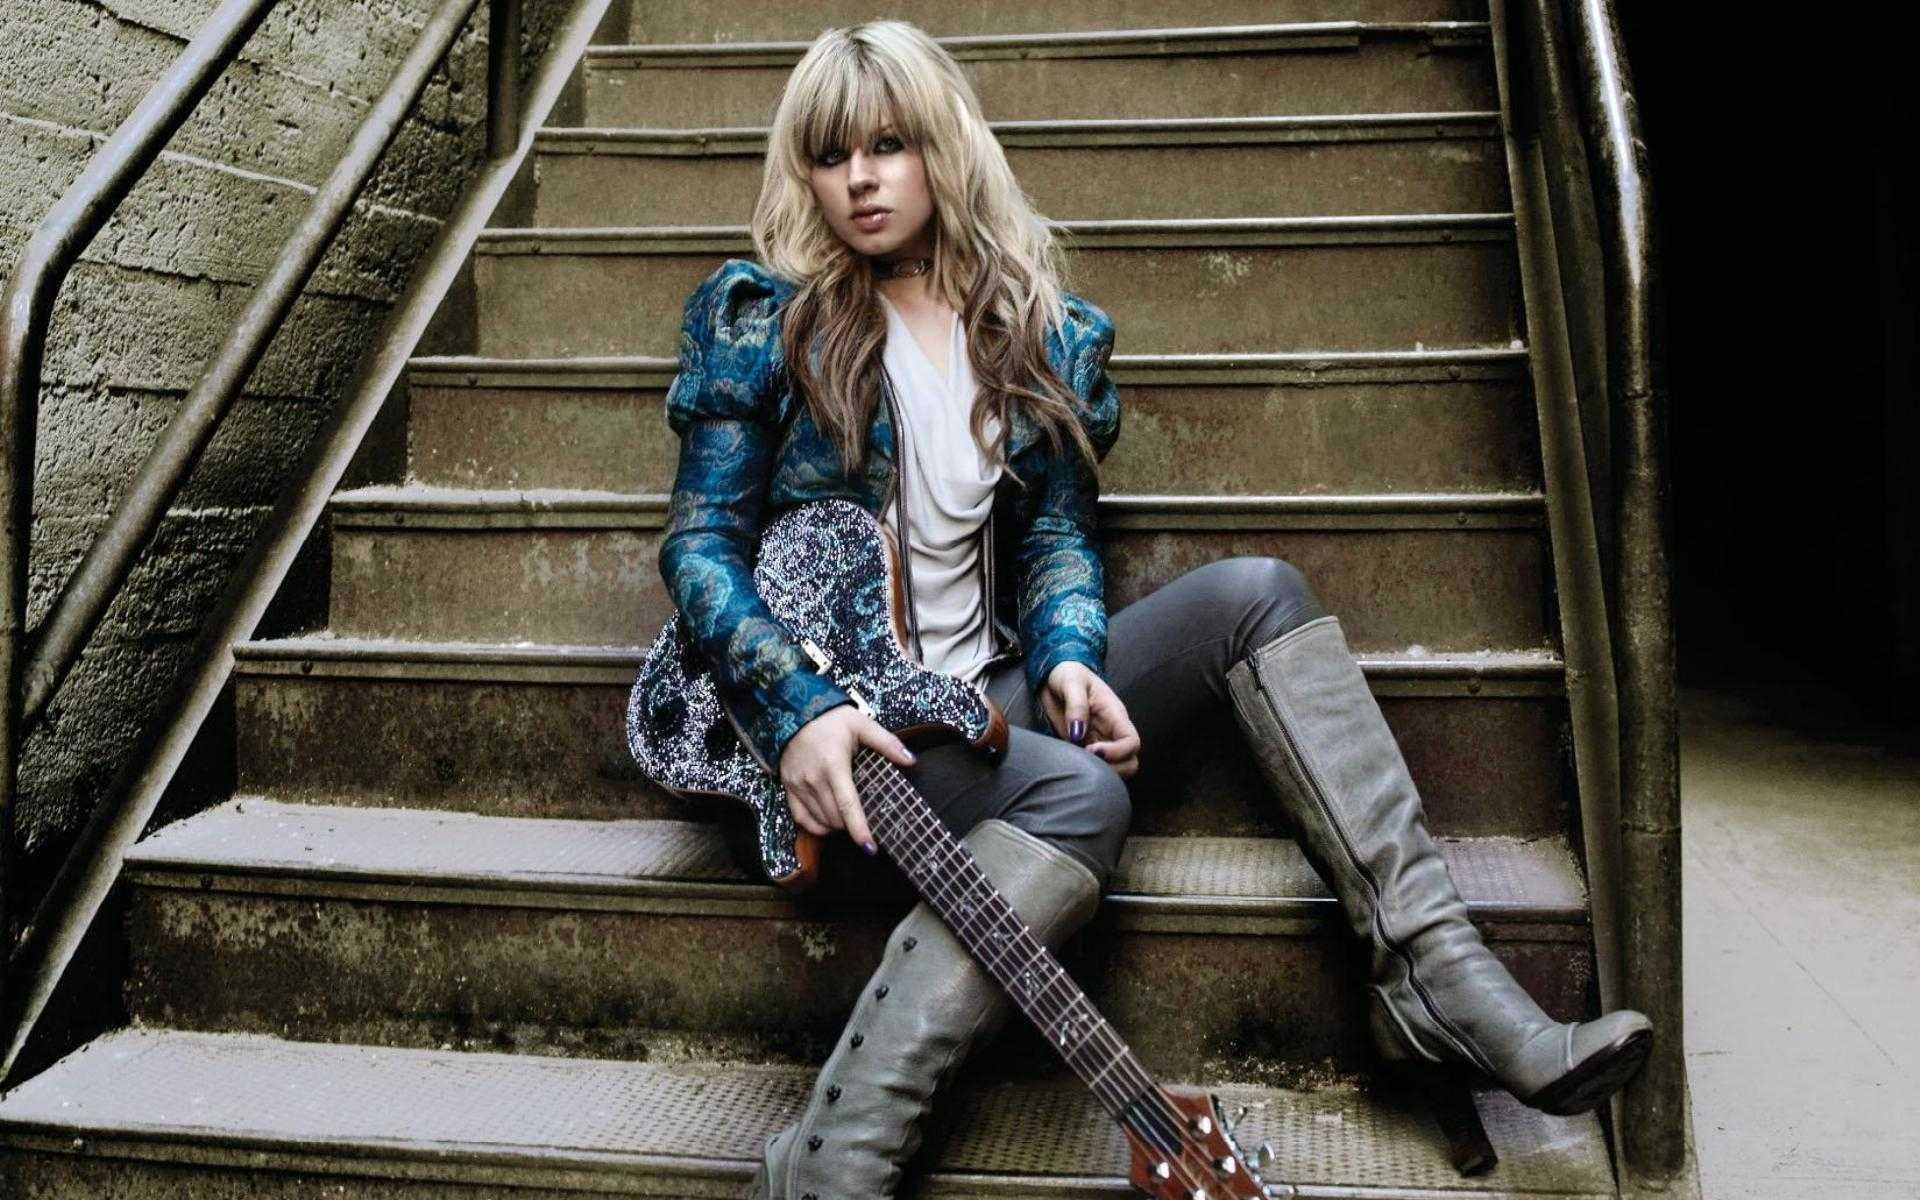 1920x1200 Orianthi Panagaris guitarist rock women females girl girls musician pop  blonde blondes guitar guitars n